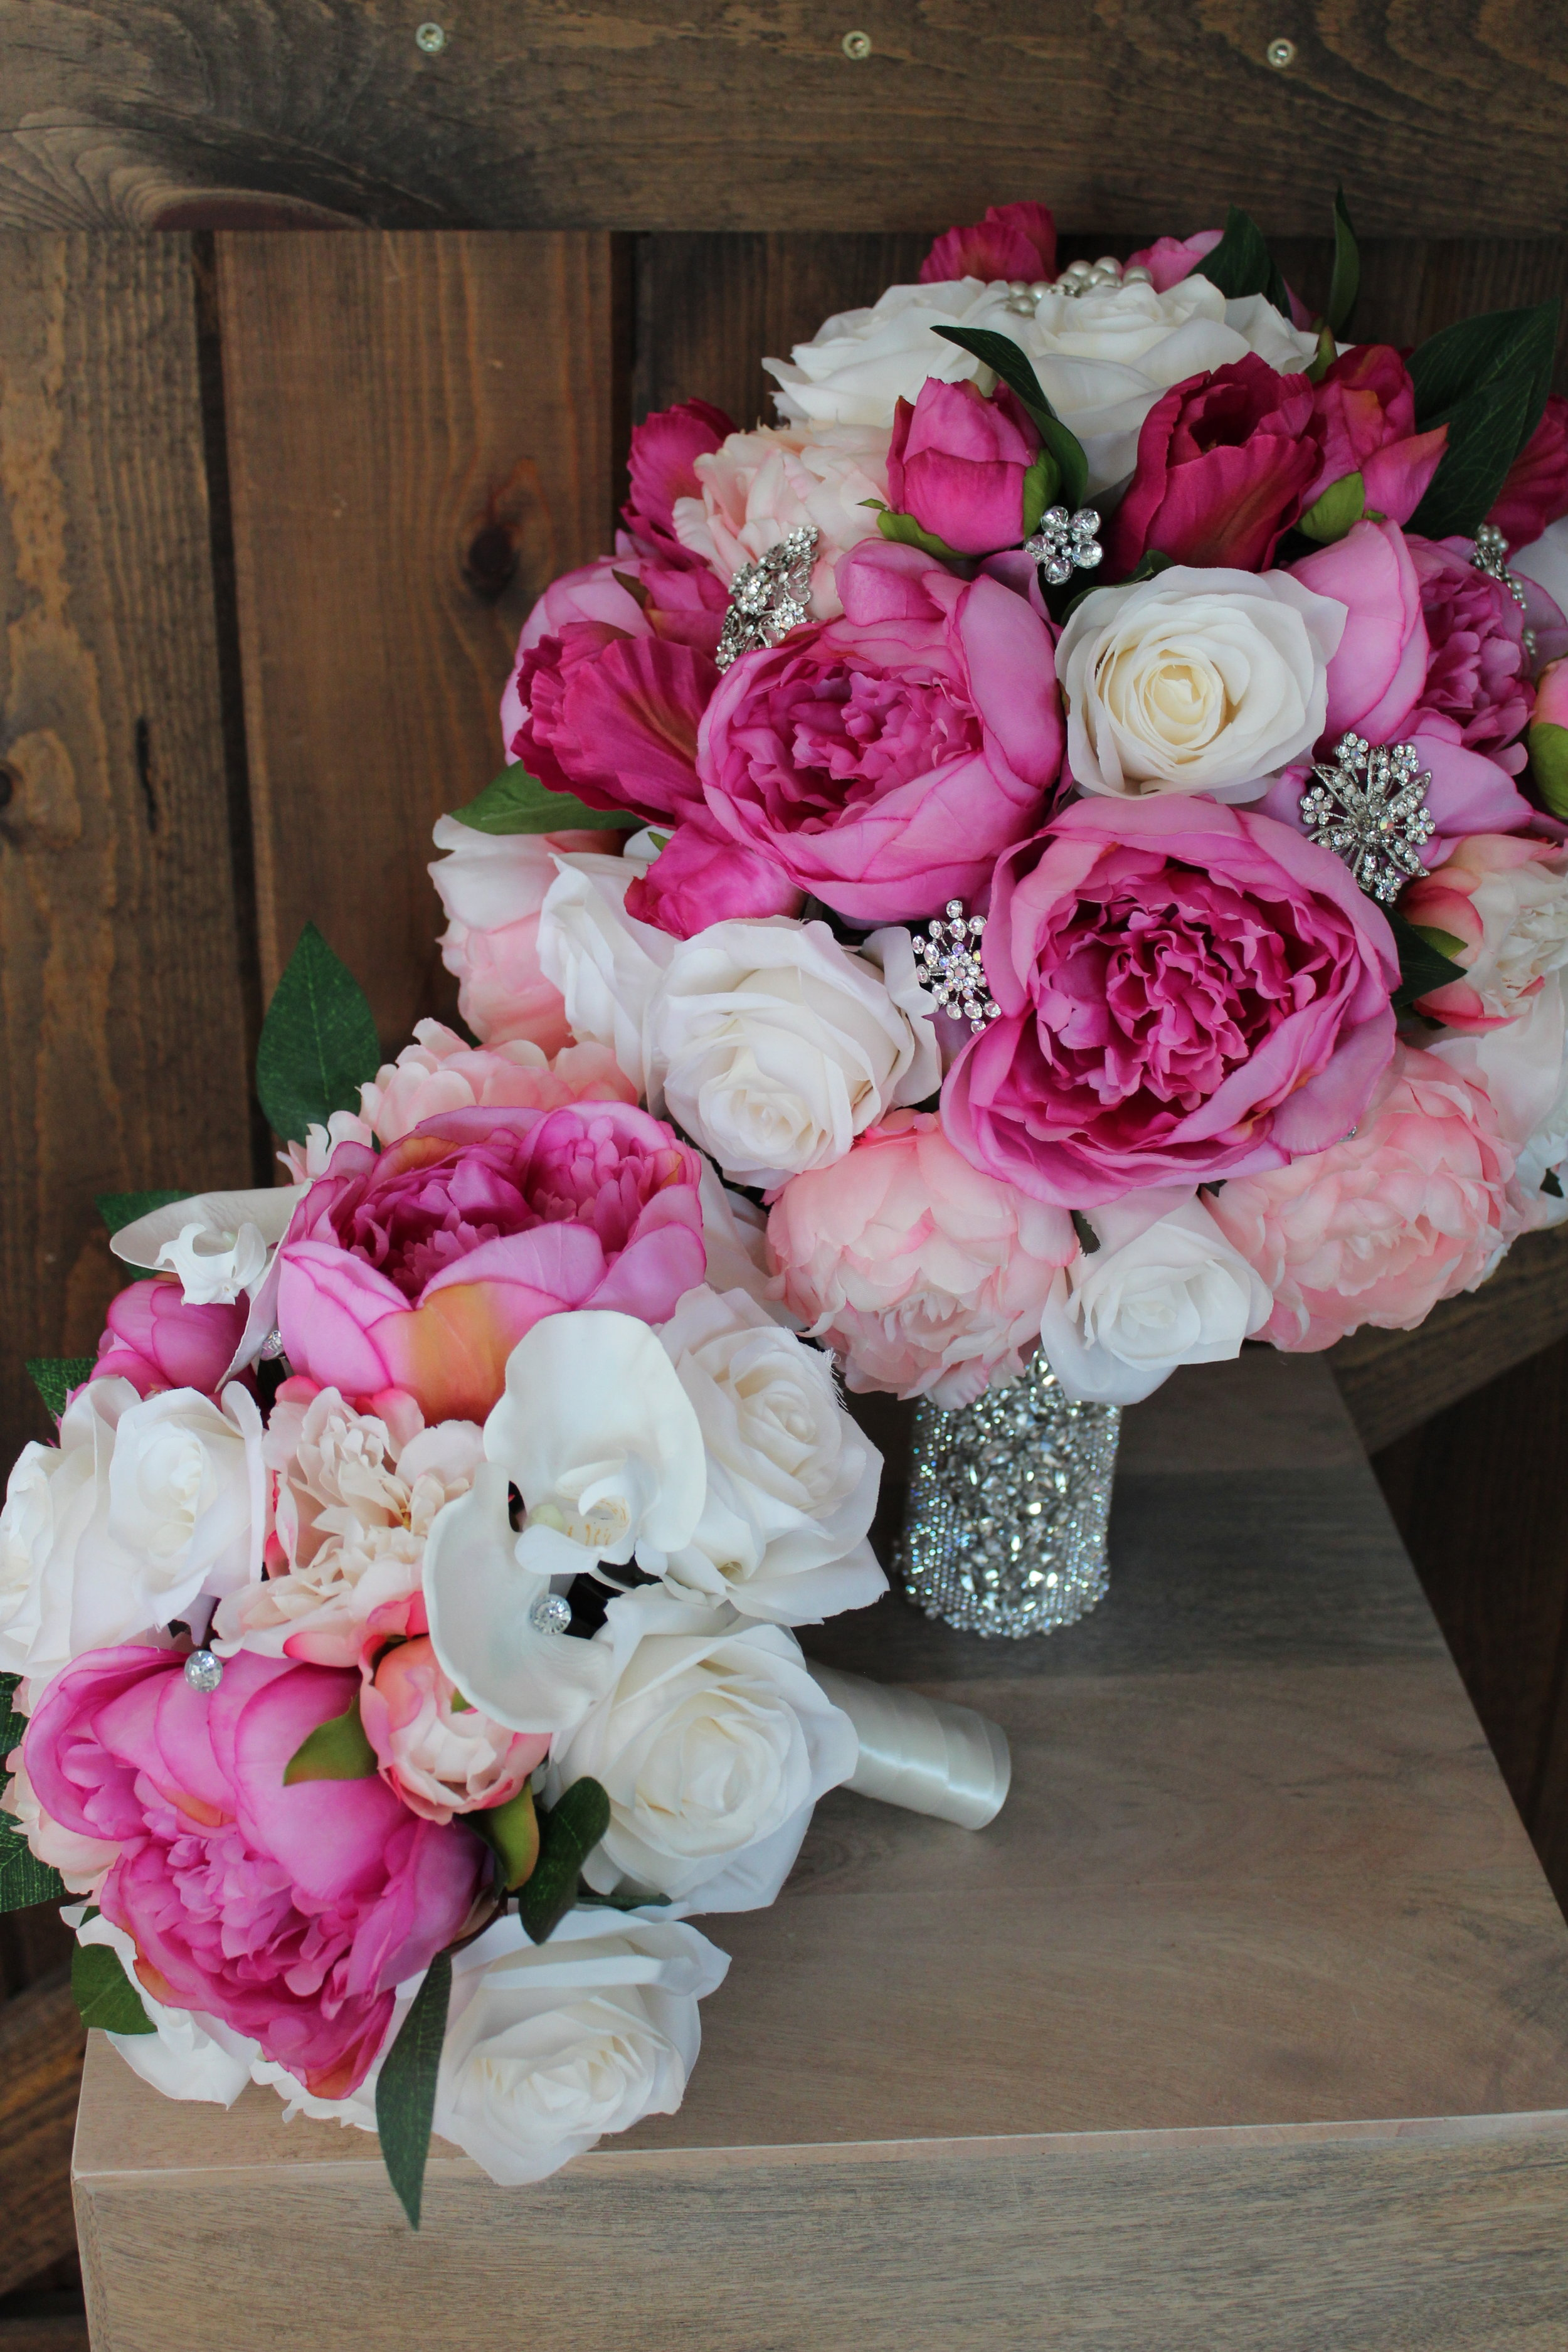 Bridesmaid Bouquet: Ivory Roses, hot pink and blush Peonies, ivory Phalaenopsis Orchids, Greenery.